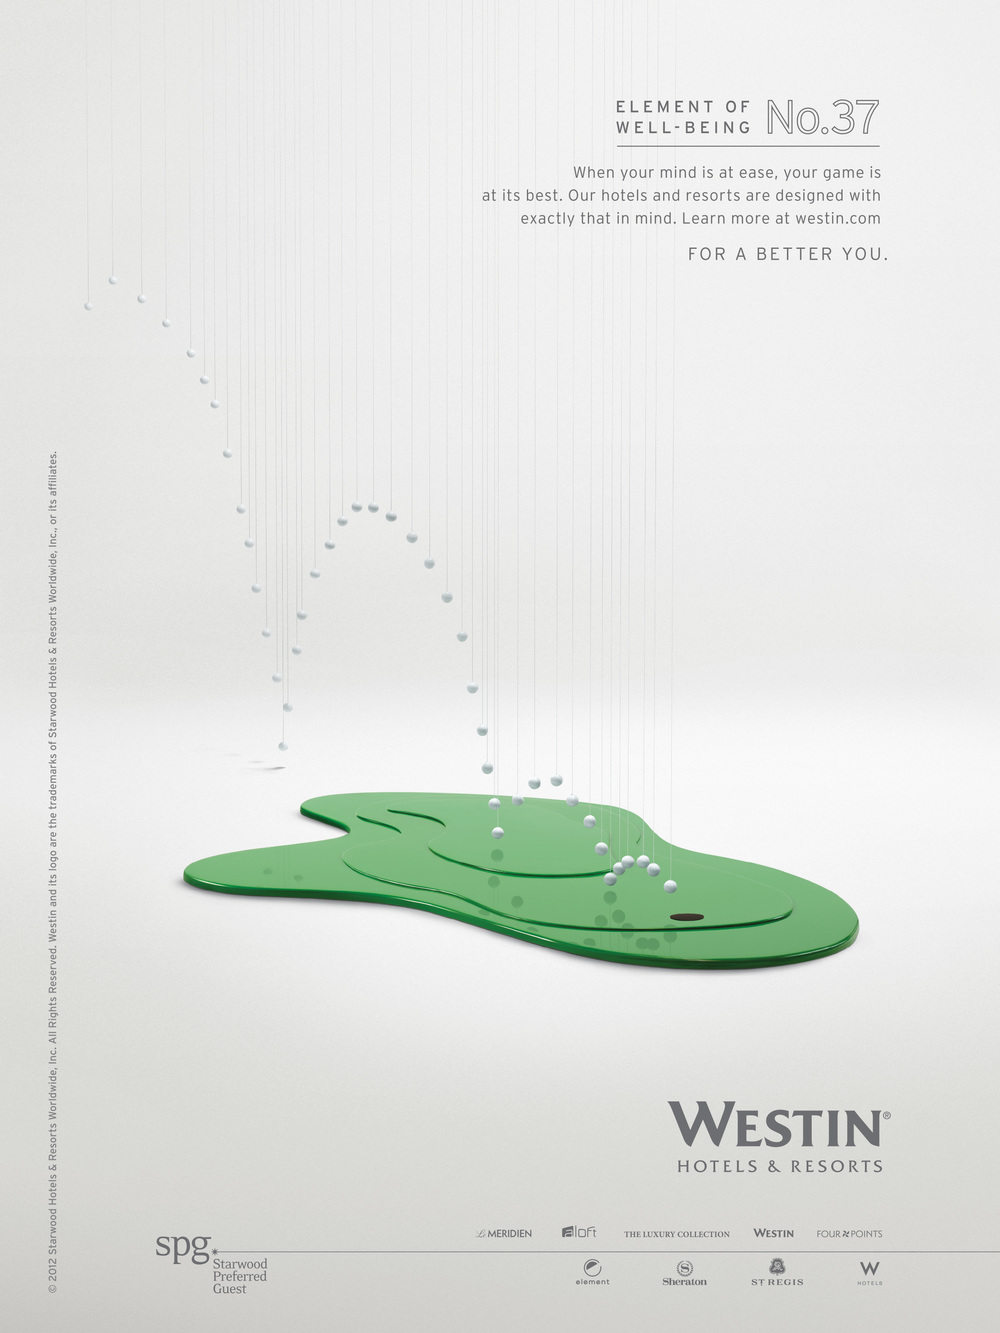 Starwood - Westin Hotels & Resorts :: Elements of Well Being